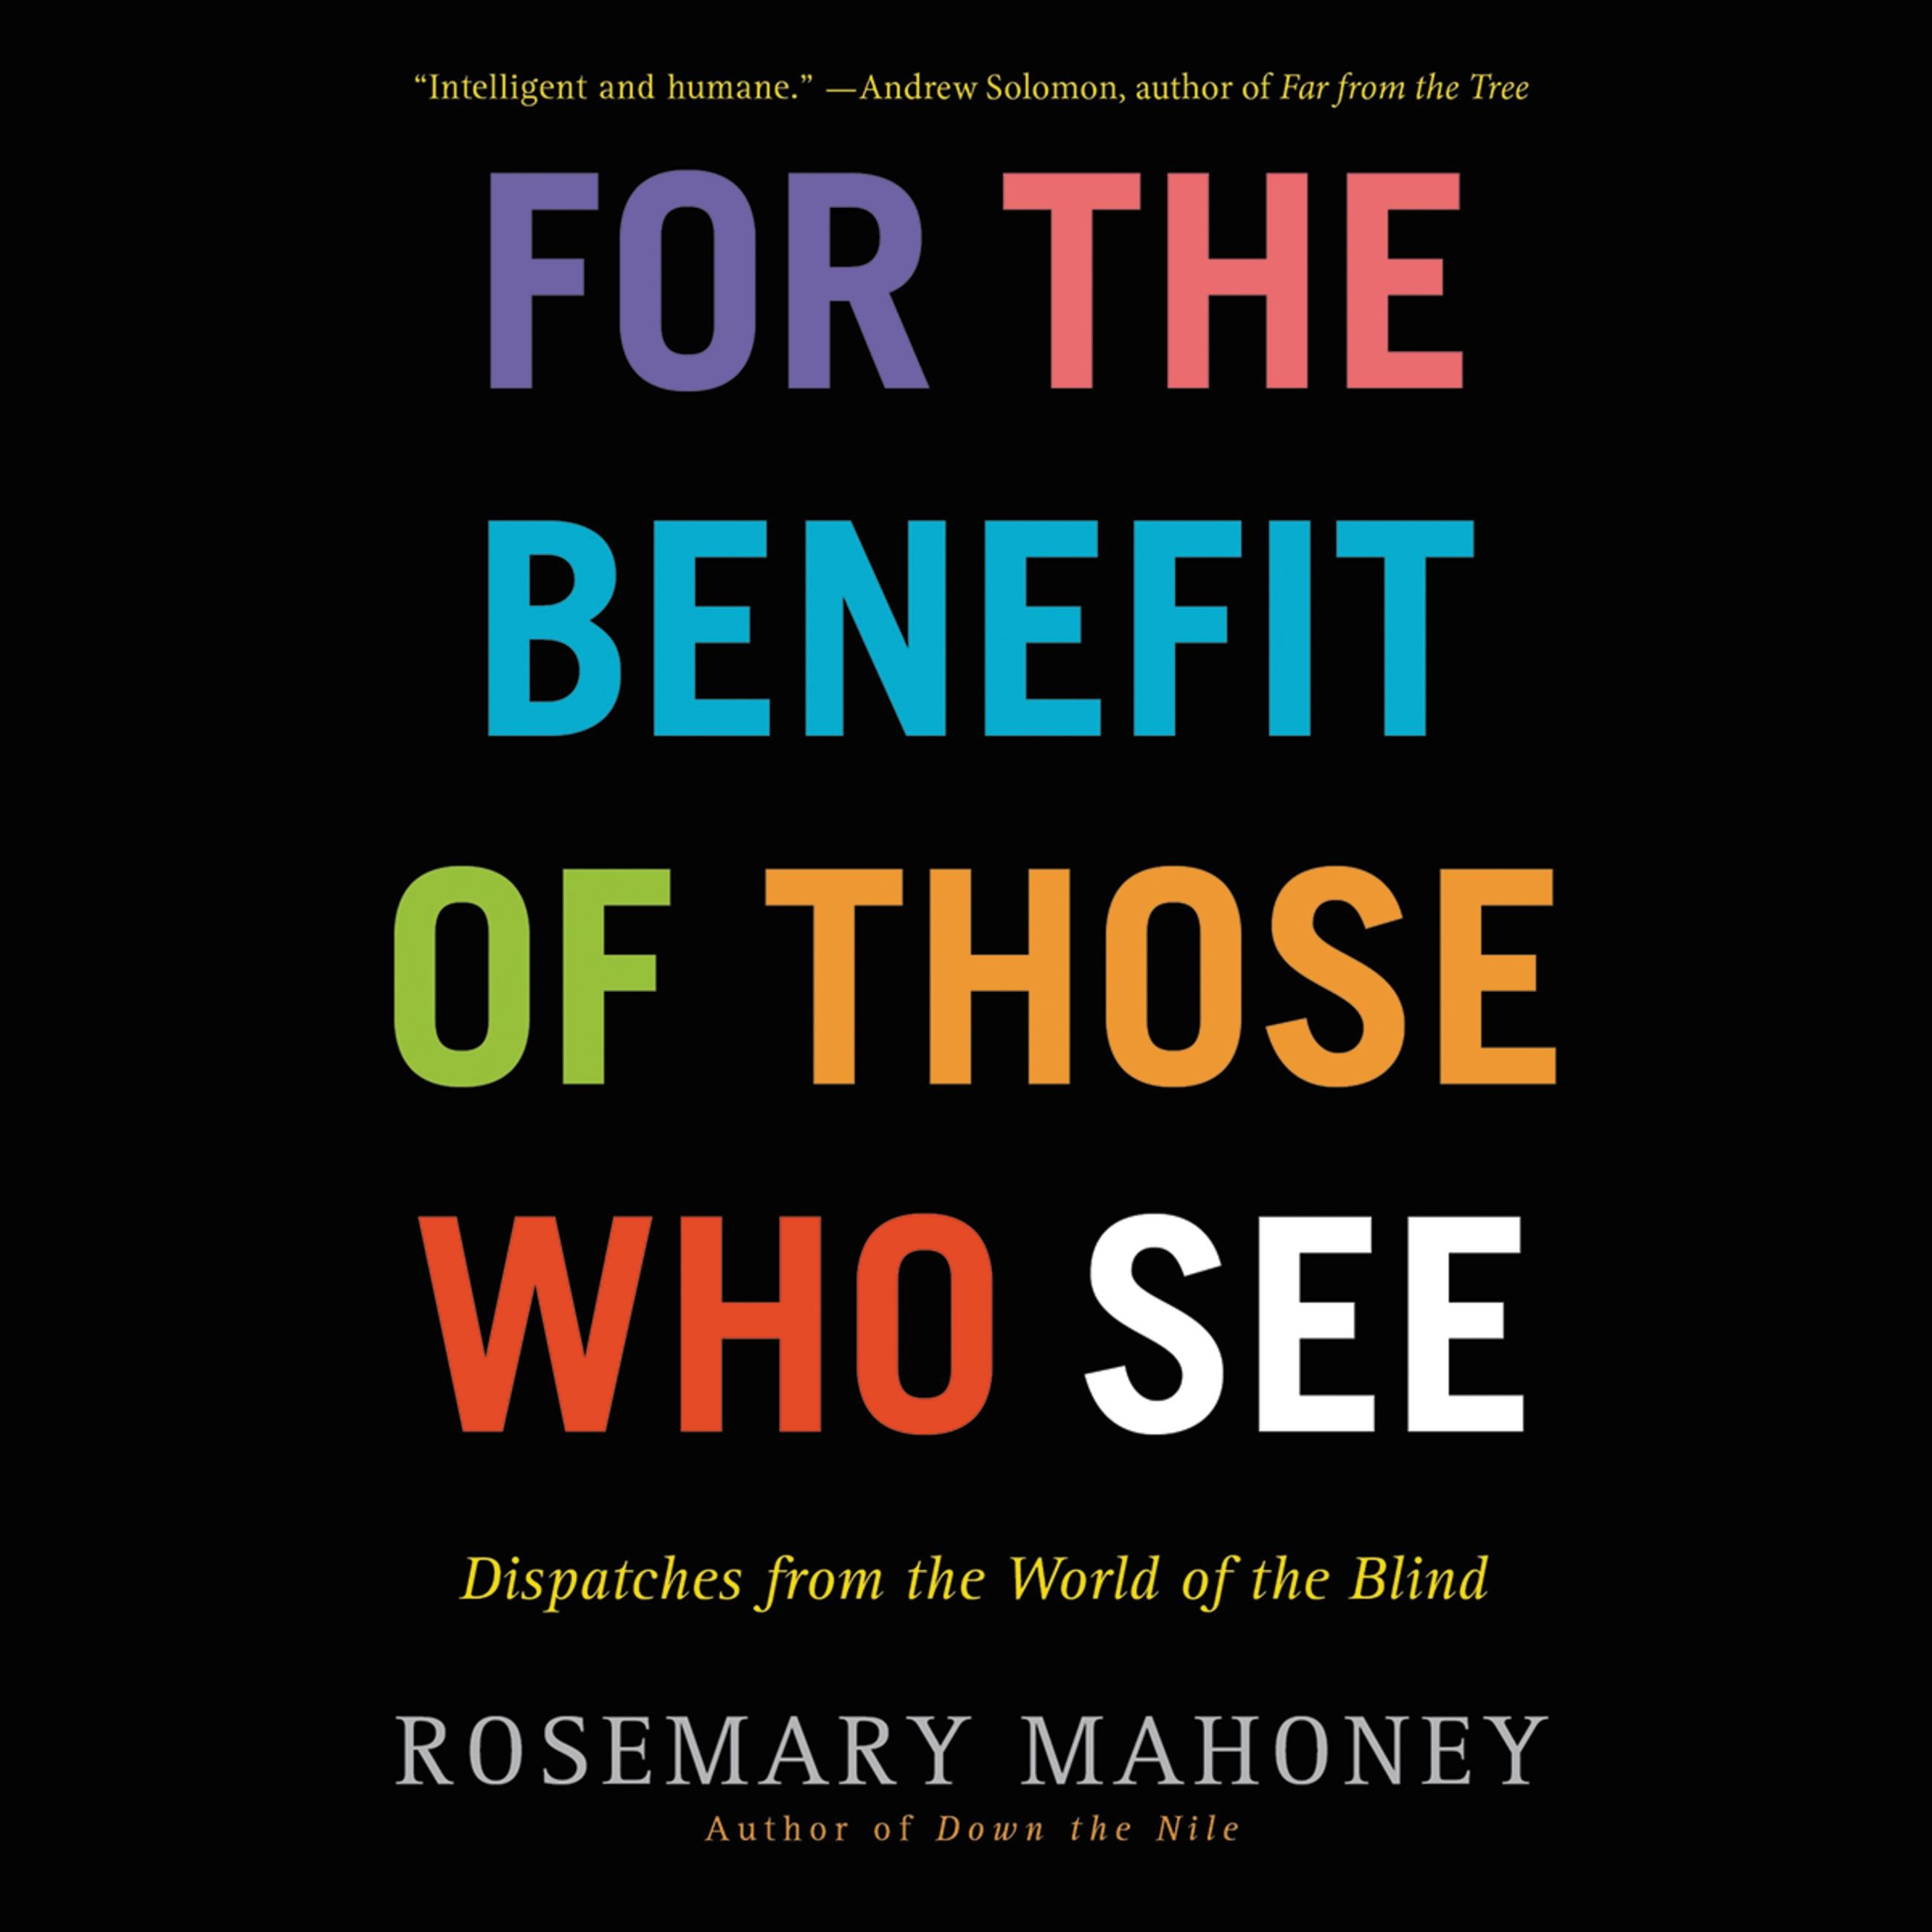 benifits of being blind In this post, first lady of the national federation of the blind and president of the maryland organization of parents of blind children, melissa riccobono writes about how the perceived disadvantages of being a blind parent are actually advantages for her family.